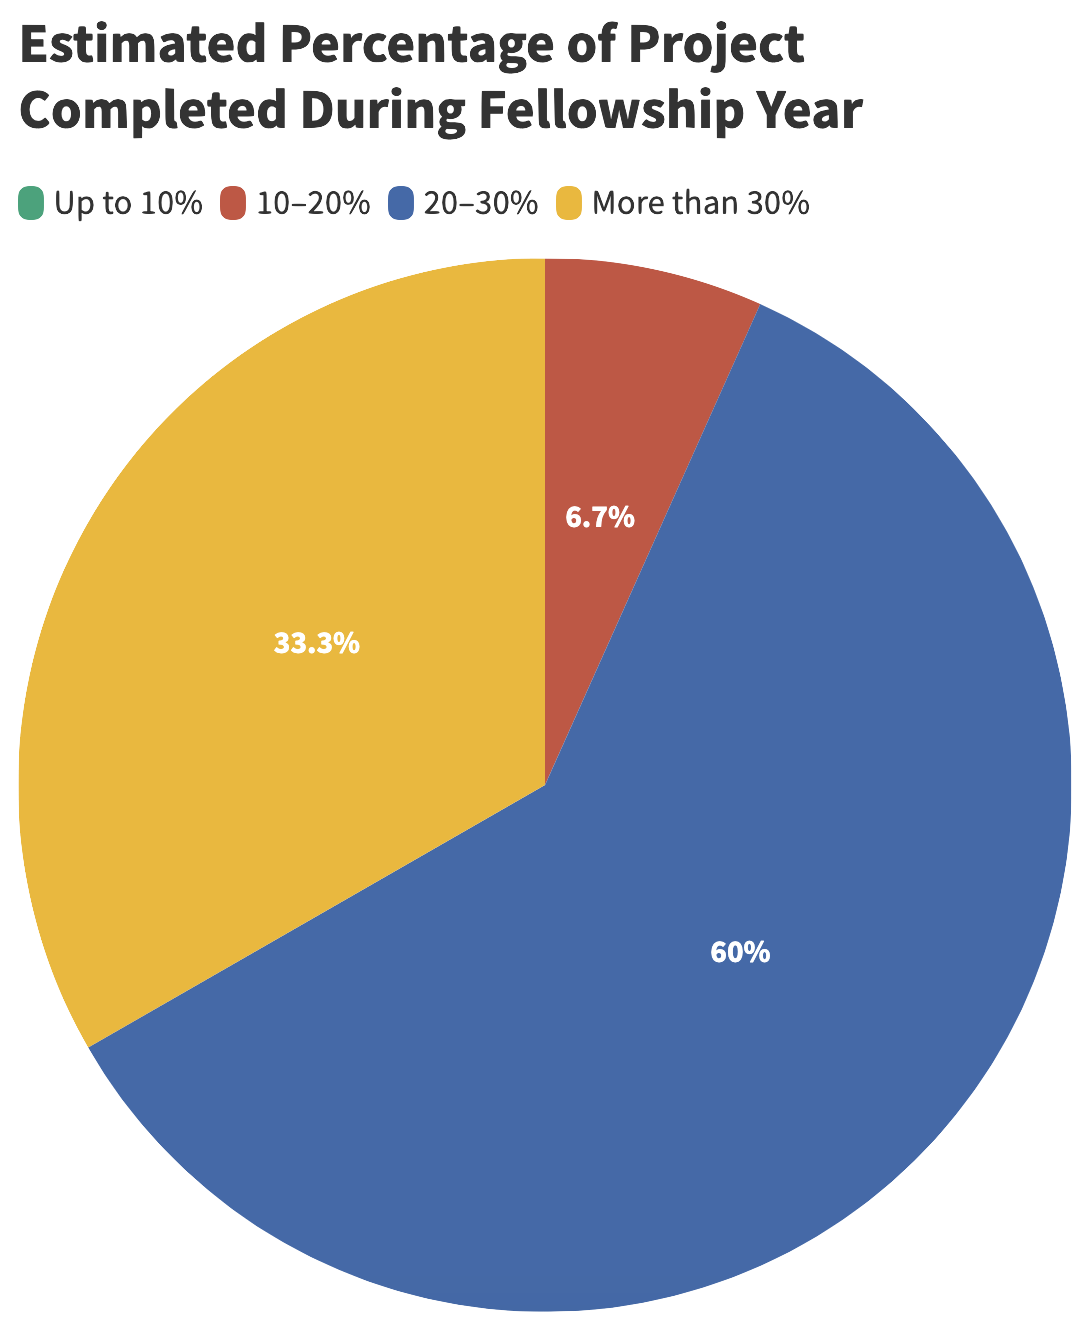 Pie chart showing fellows' self-reported estimated percentage of project completed during the fellowship year. 10-20% completed, 6.7%; 20–30% completed, 60%; more than 30% completed, 33.3%